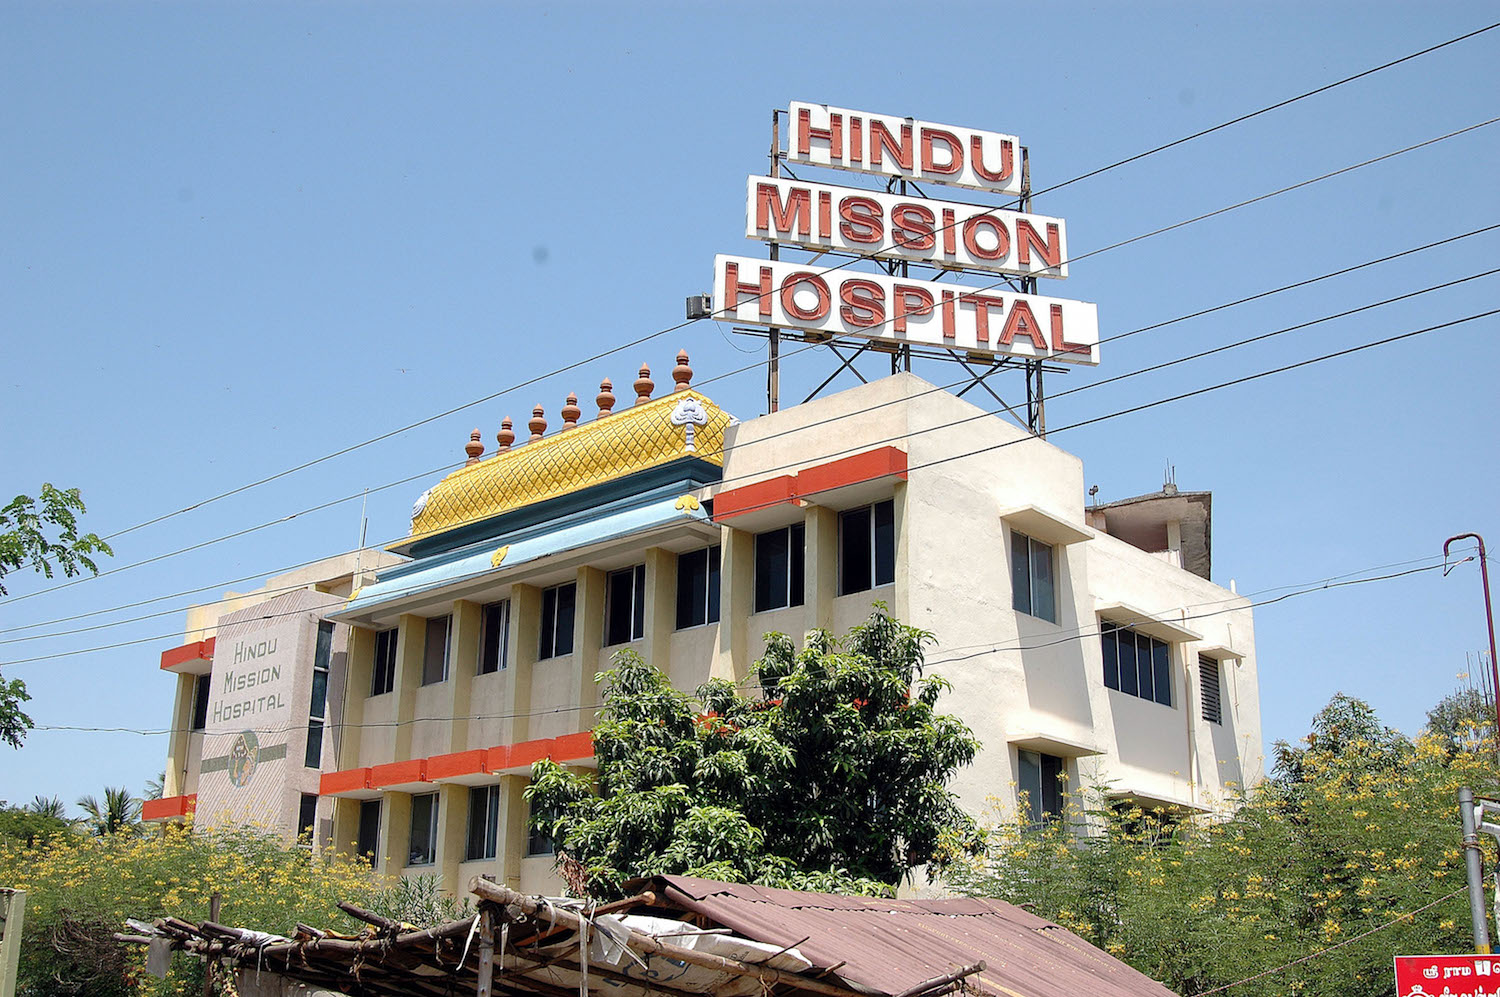 List of CHENNAI HOSPITALS | India | Reviews and Ratings